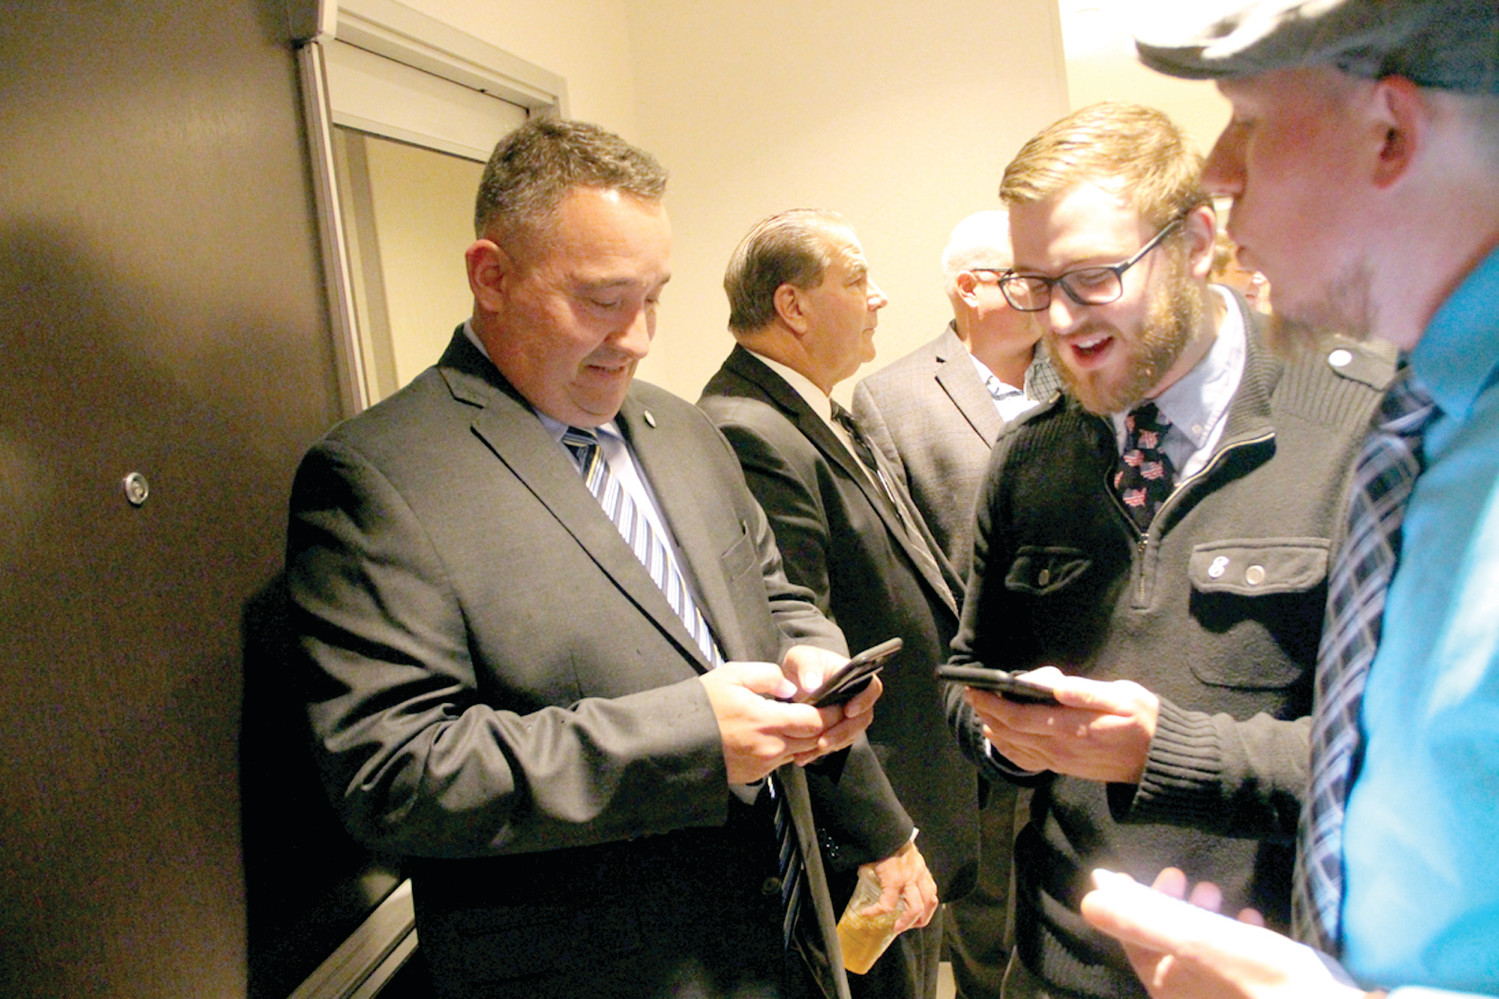 RESULT ORIENTED: Ward 3 Councilman Tim Howe, who was unopposed, and District 1 School Committee candidate Kyle Adams, who beat Richard Cascella, use their cell phones to retrieve election results.